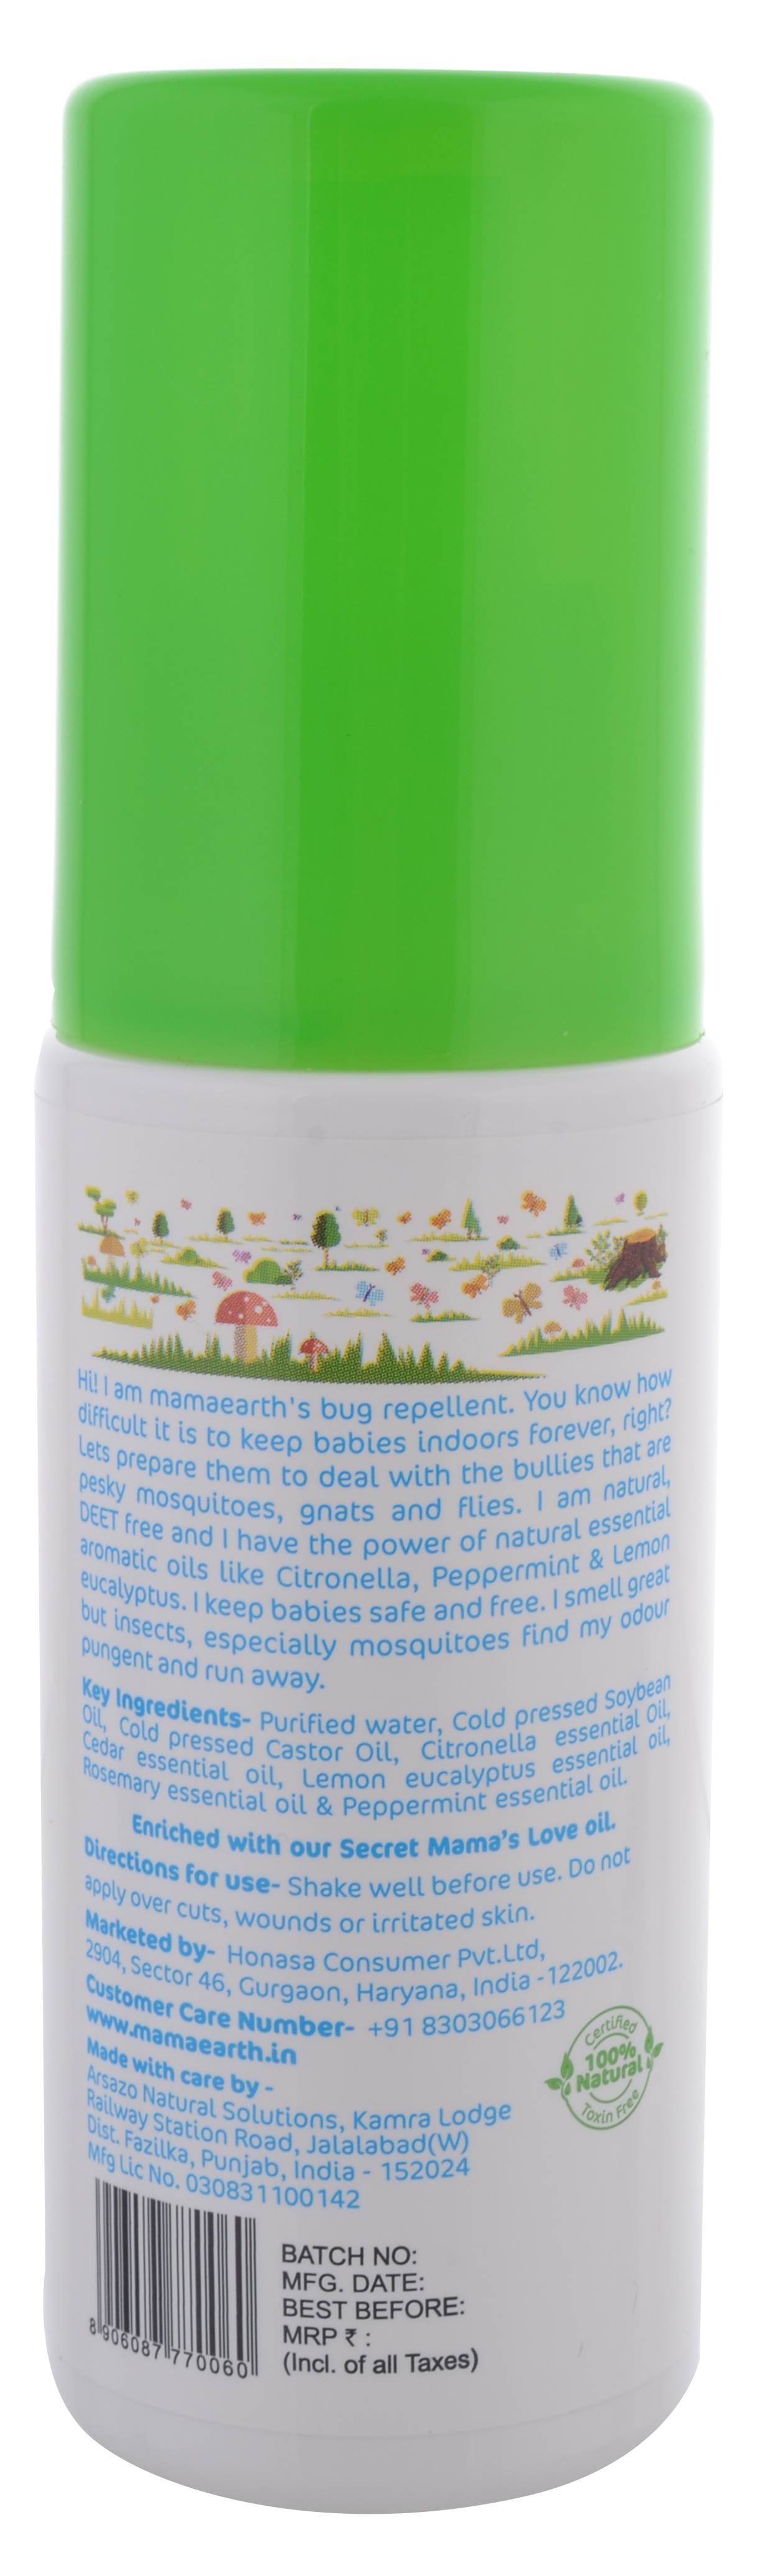 Natural Insect Repellent Buy Mosquito Repellent For Babies Online